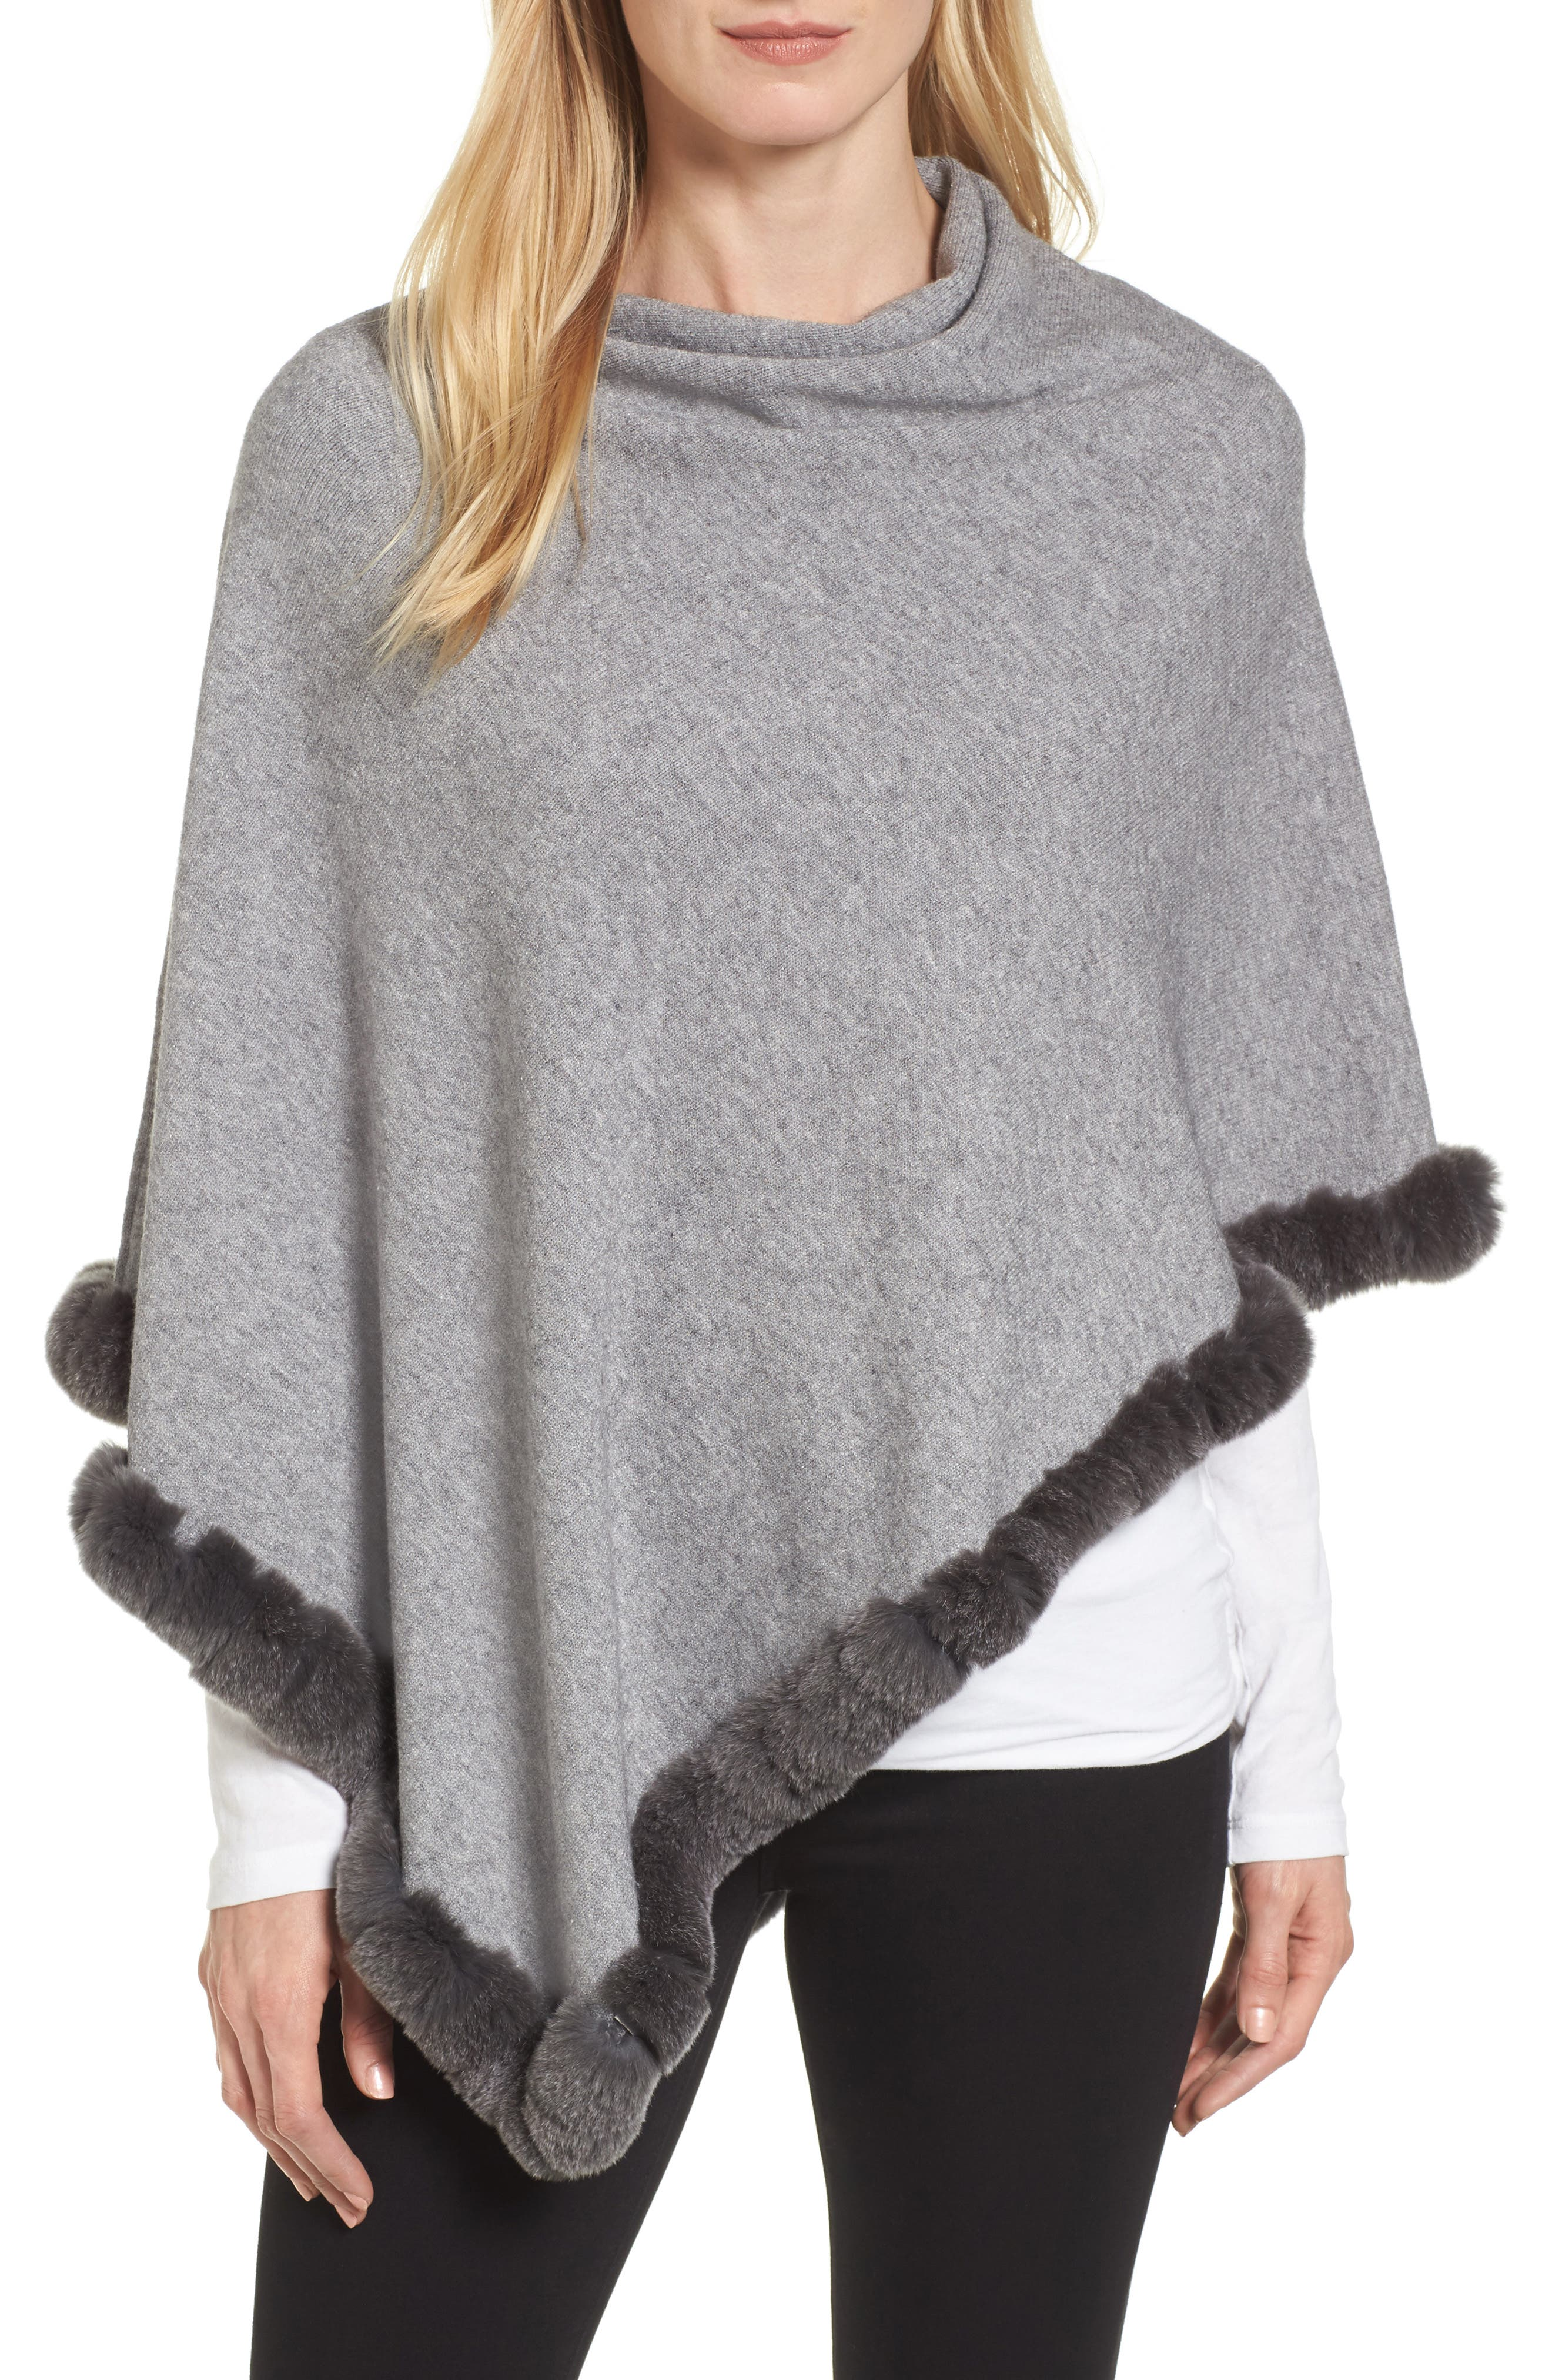 Alternate Image 1 Selected - La Fiorentina Angled Poncho with Genuine Rabbit Fur Trim